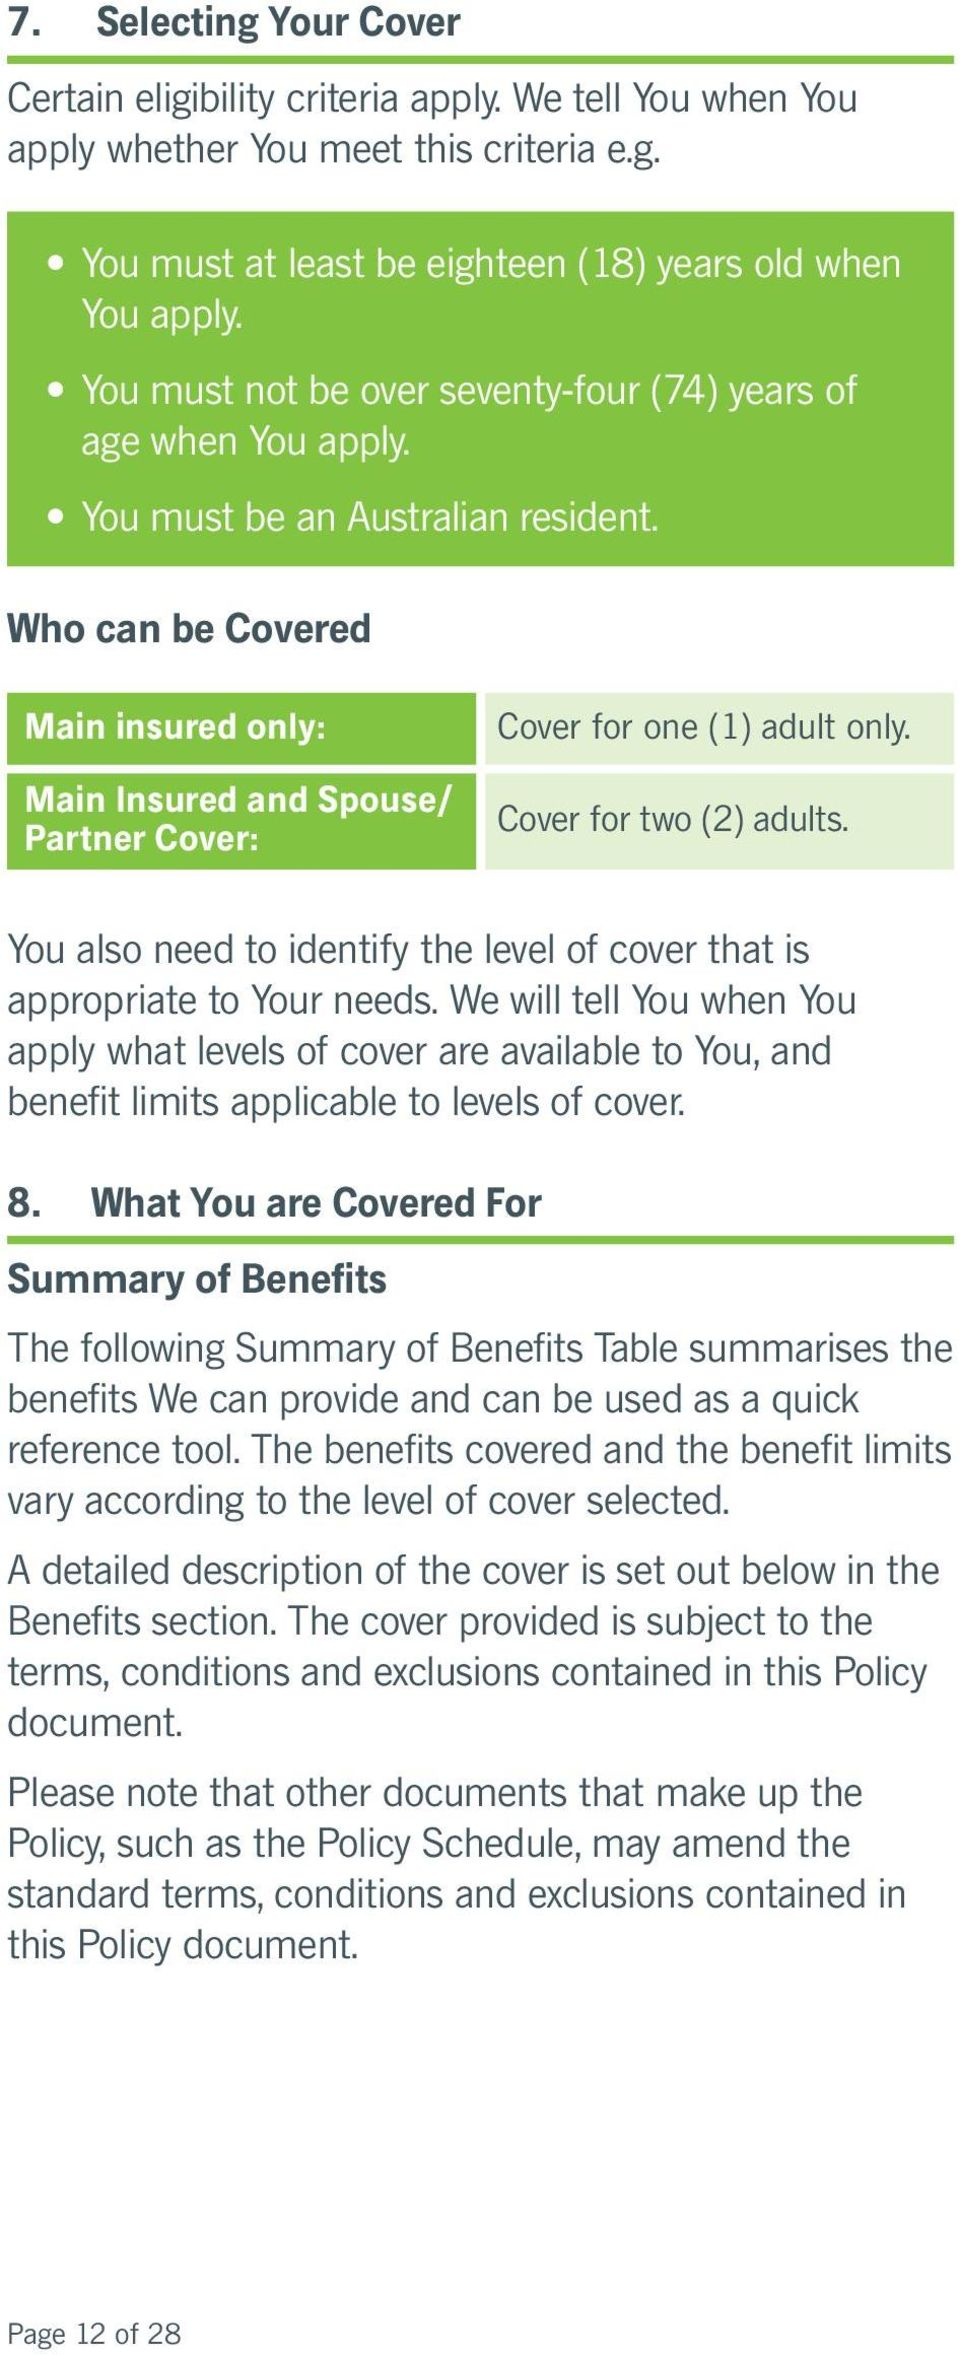 Who can be Covered Main insured only: Main Insured and Spouse/ Partner Cover: Cover for one (1) adult only. Cover for two (2) adults.